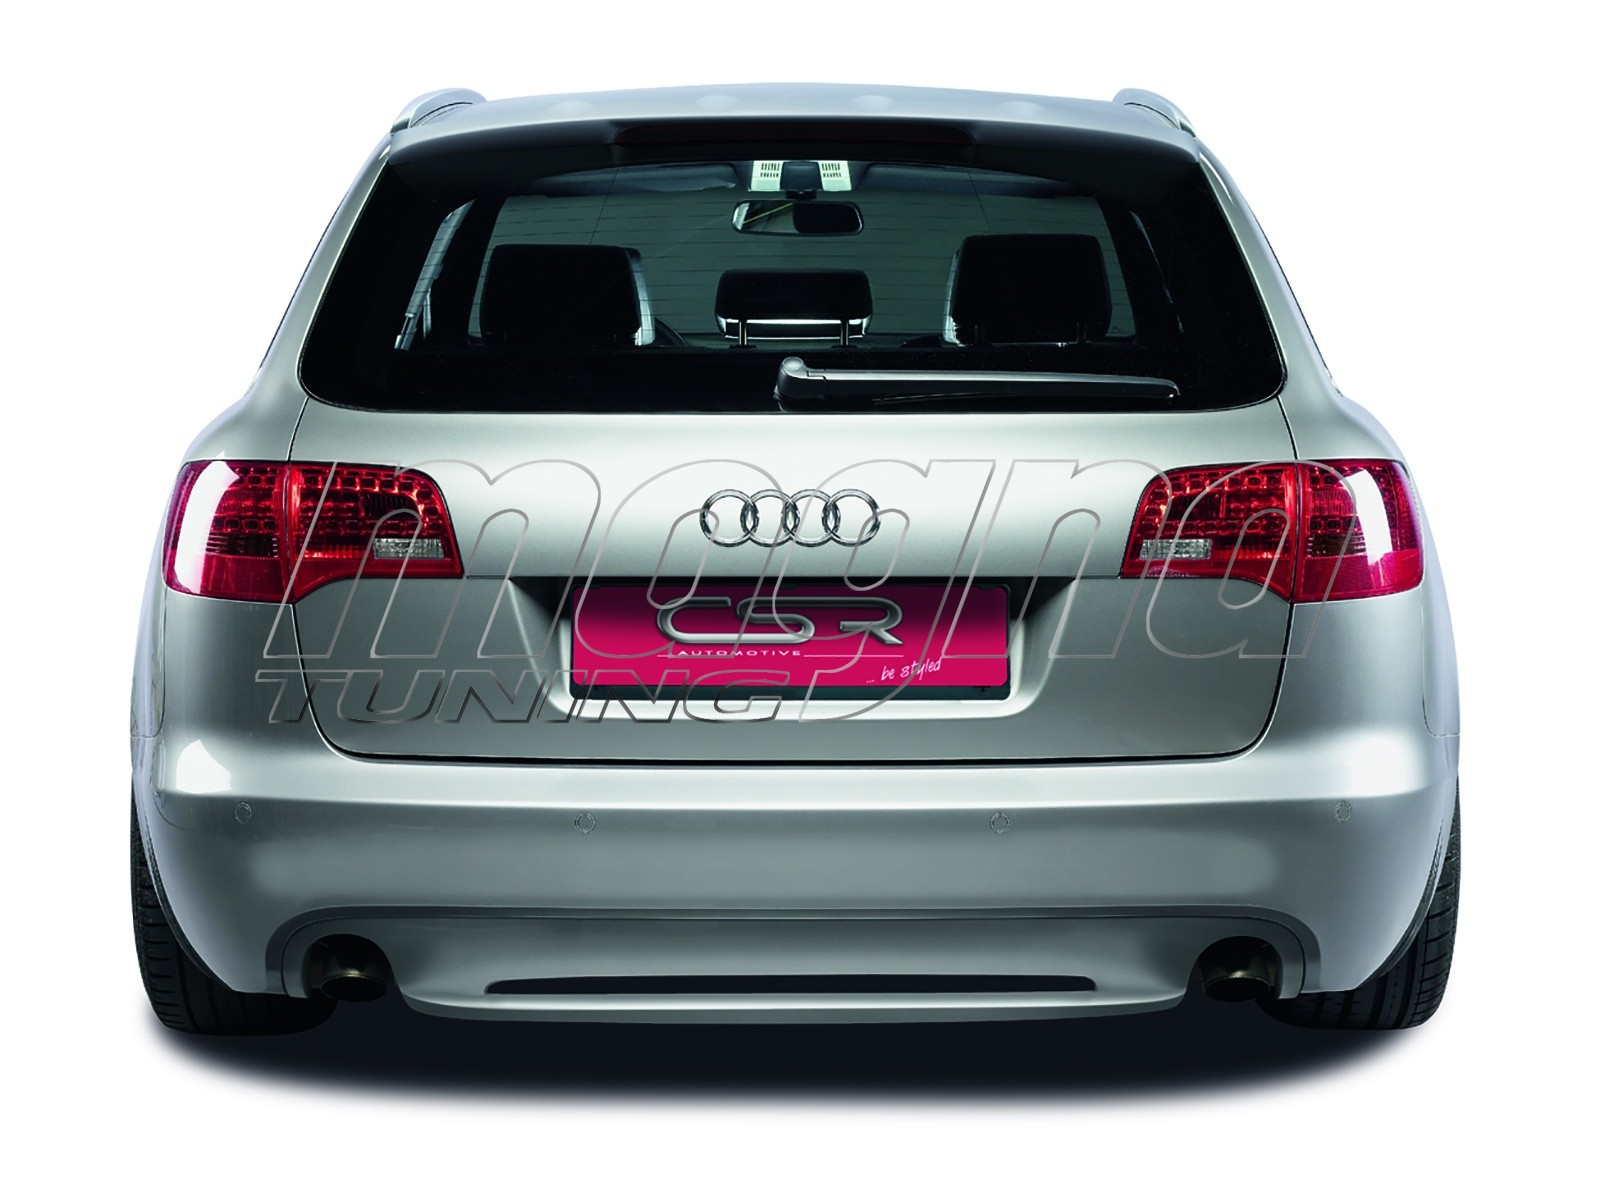 Repair Manual audi A6 4f mit Vcds